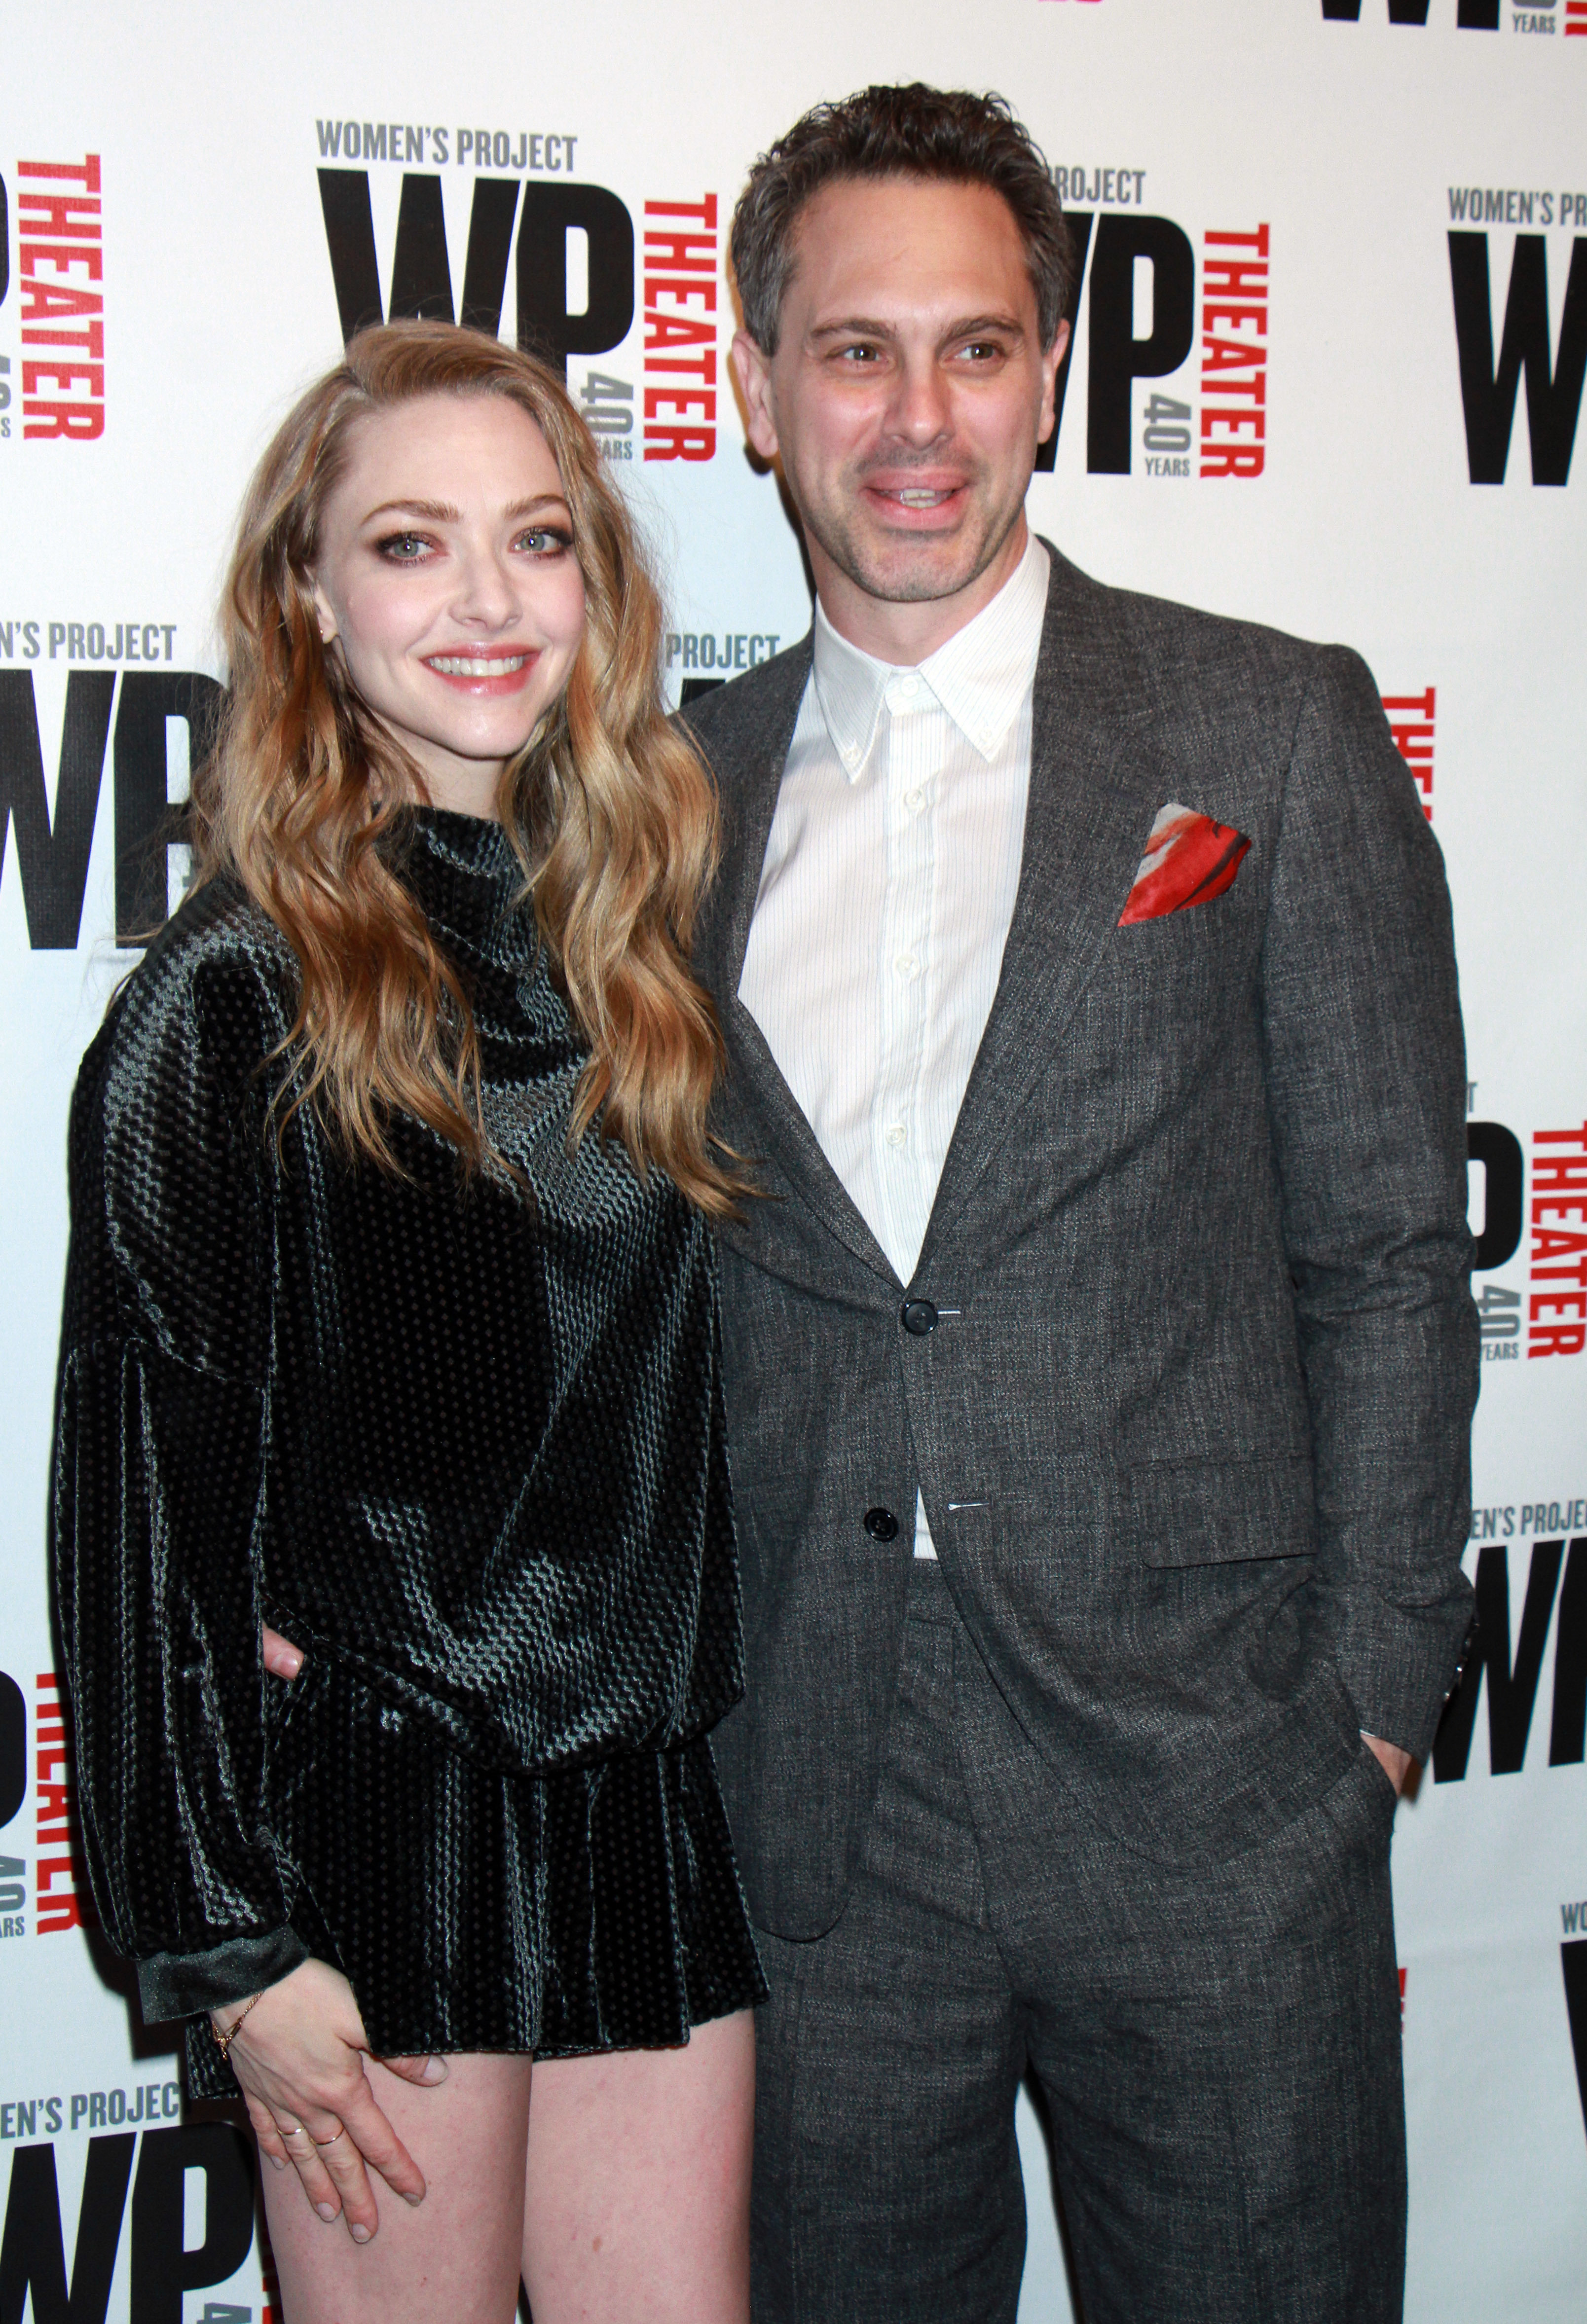 Amanda Seyfried and Thomas Sadowski attend the WP Theater 40th Anniversary Gala in New York City on April 15, 2019.